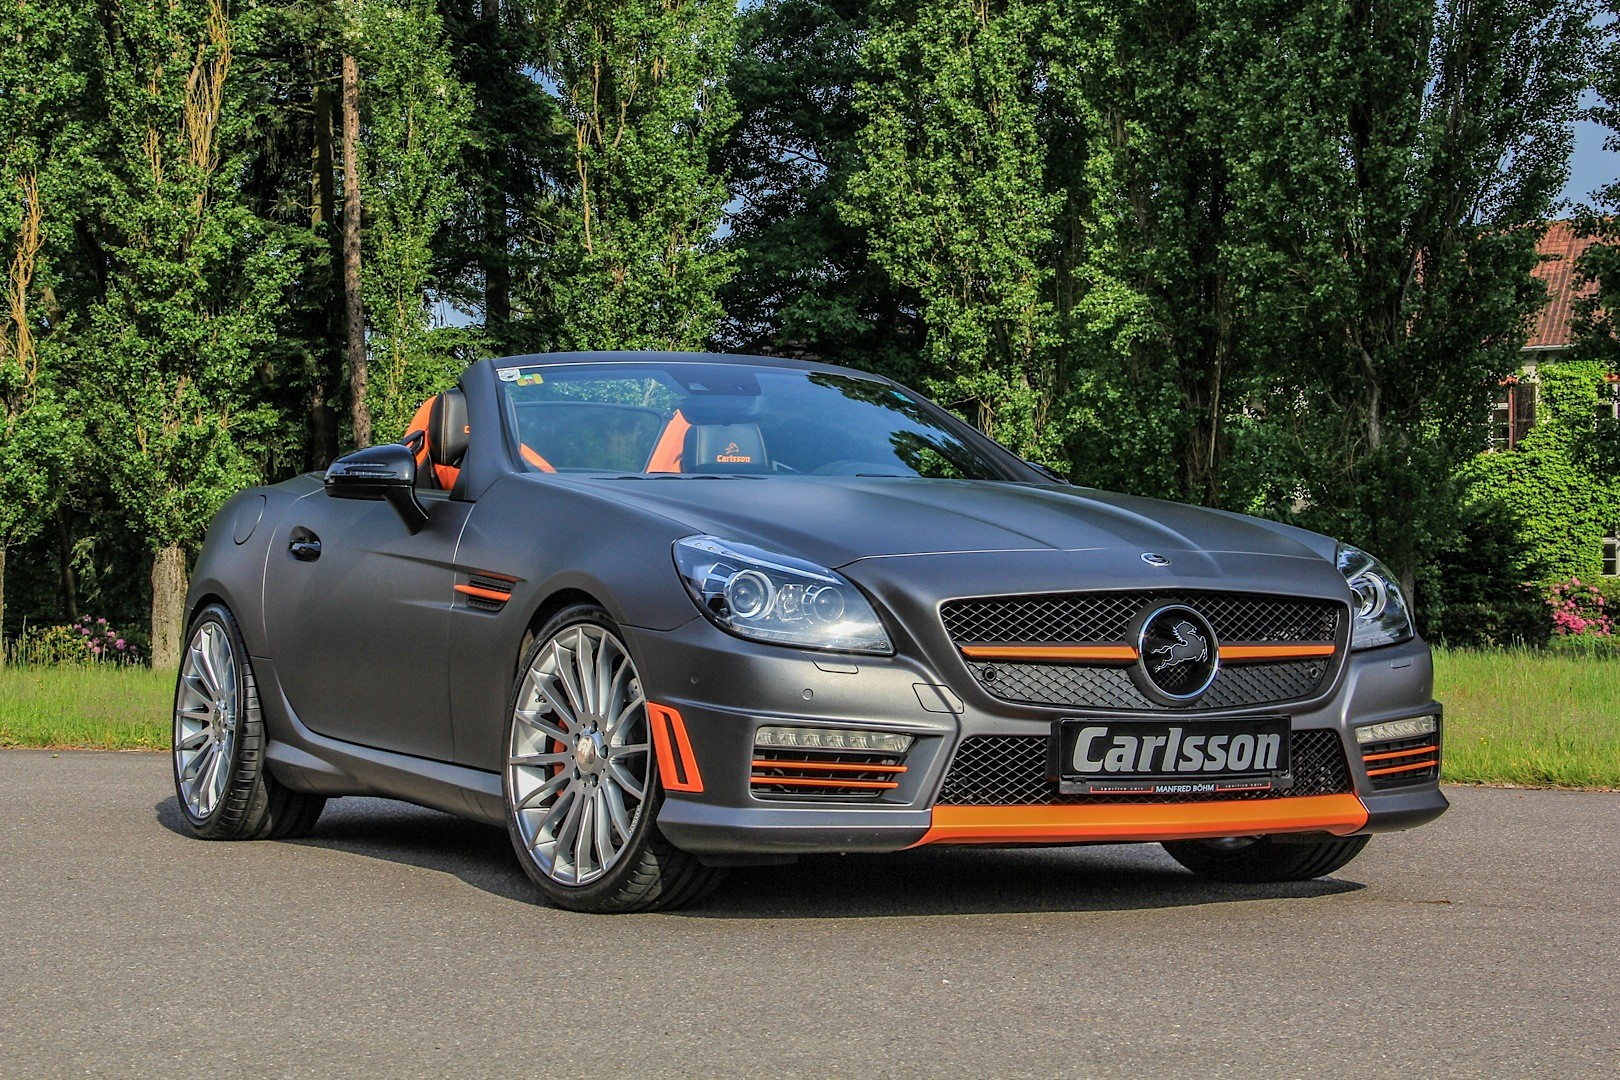 mercedes slk 55 amg gets carlsson interior with orange and. Black Bedroom Furniture Sets. Home Design Ideas